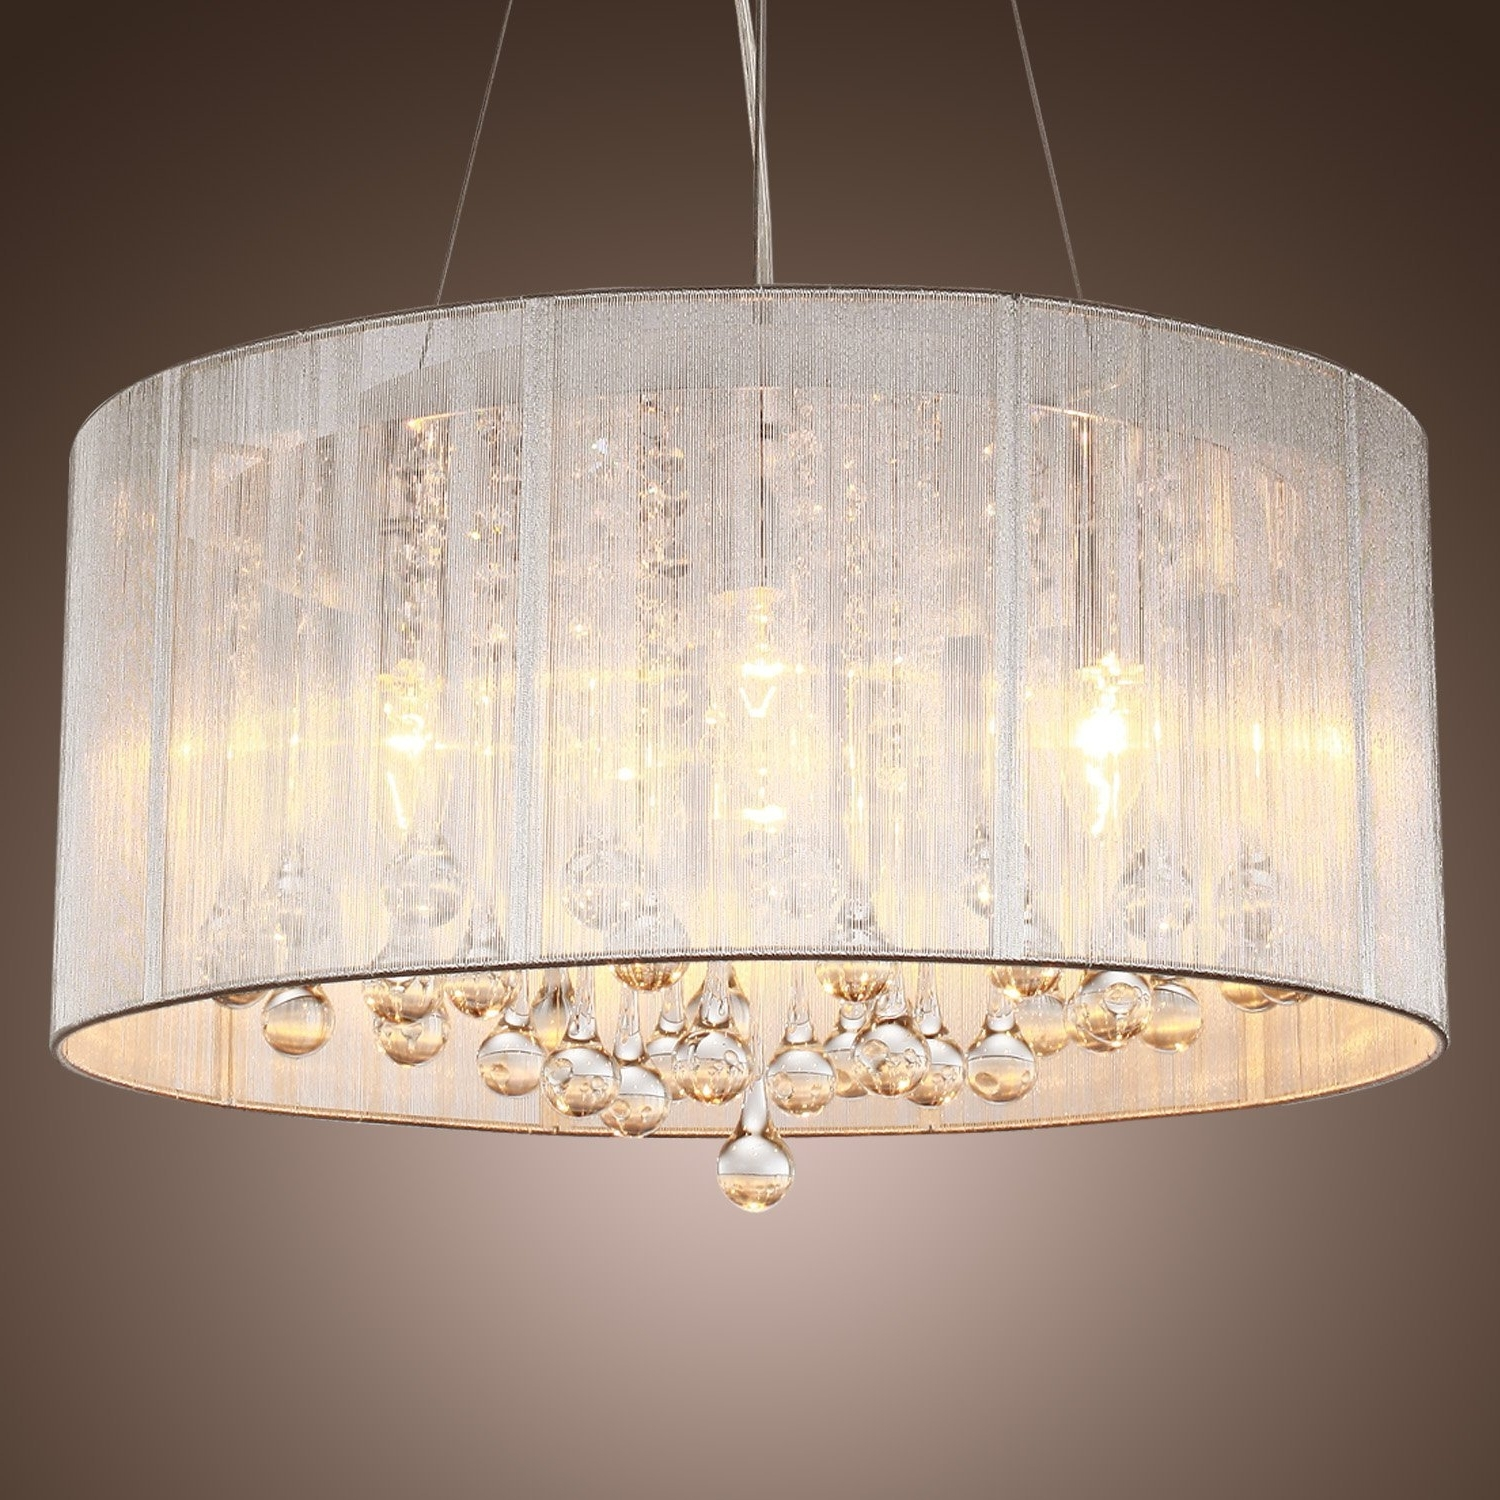 Lightinthebox Modern Silver Crystal Pendant Light In Cylinder Shade With Regard To Newest Cream Crystal Chandelier (View 4 of 15)